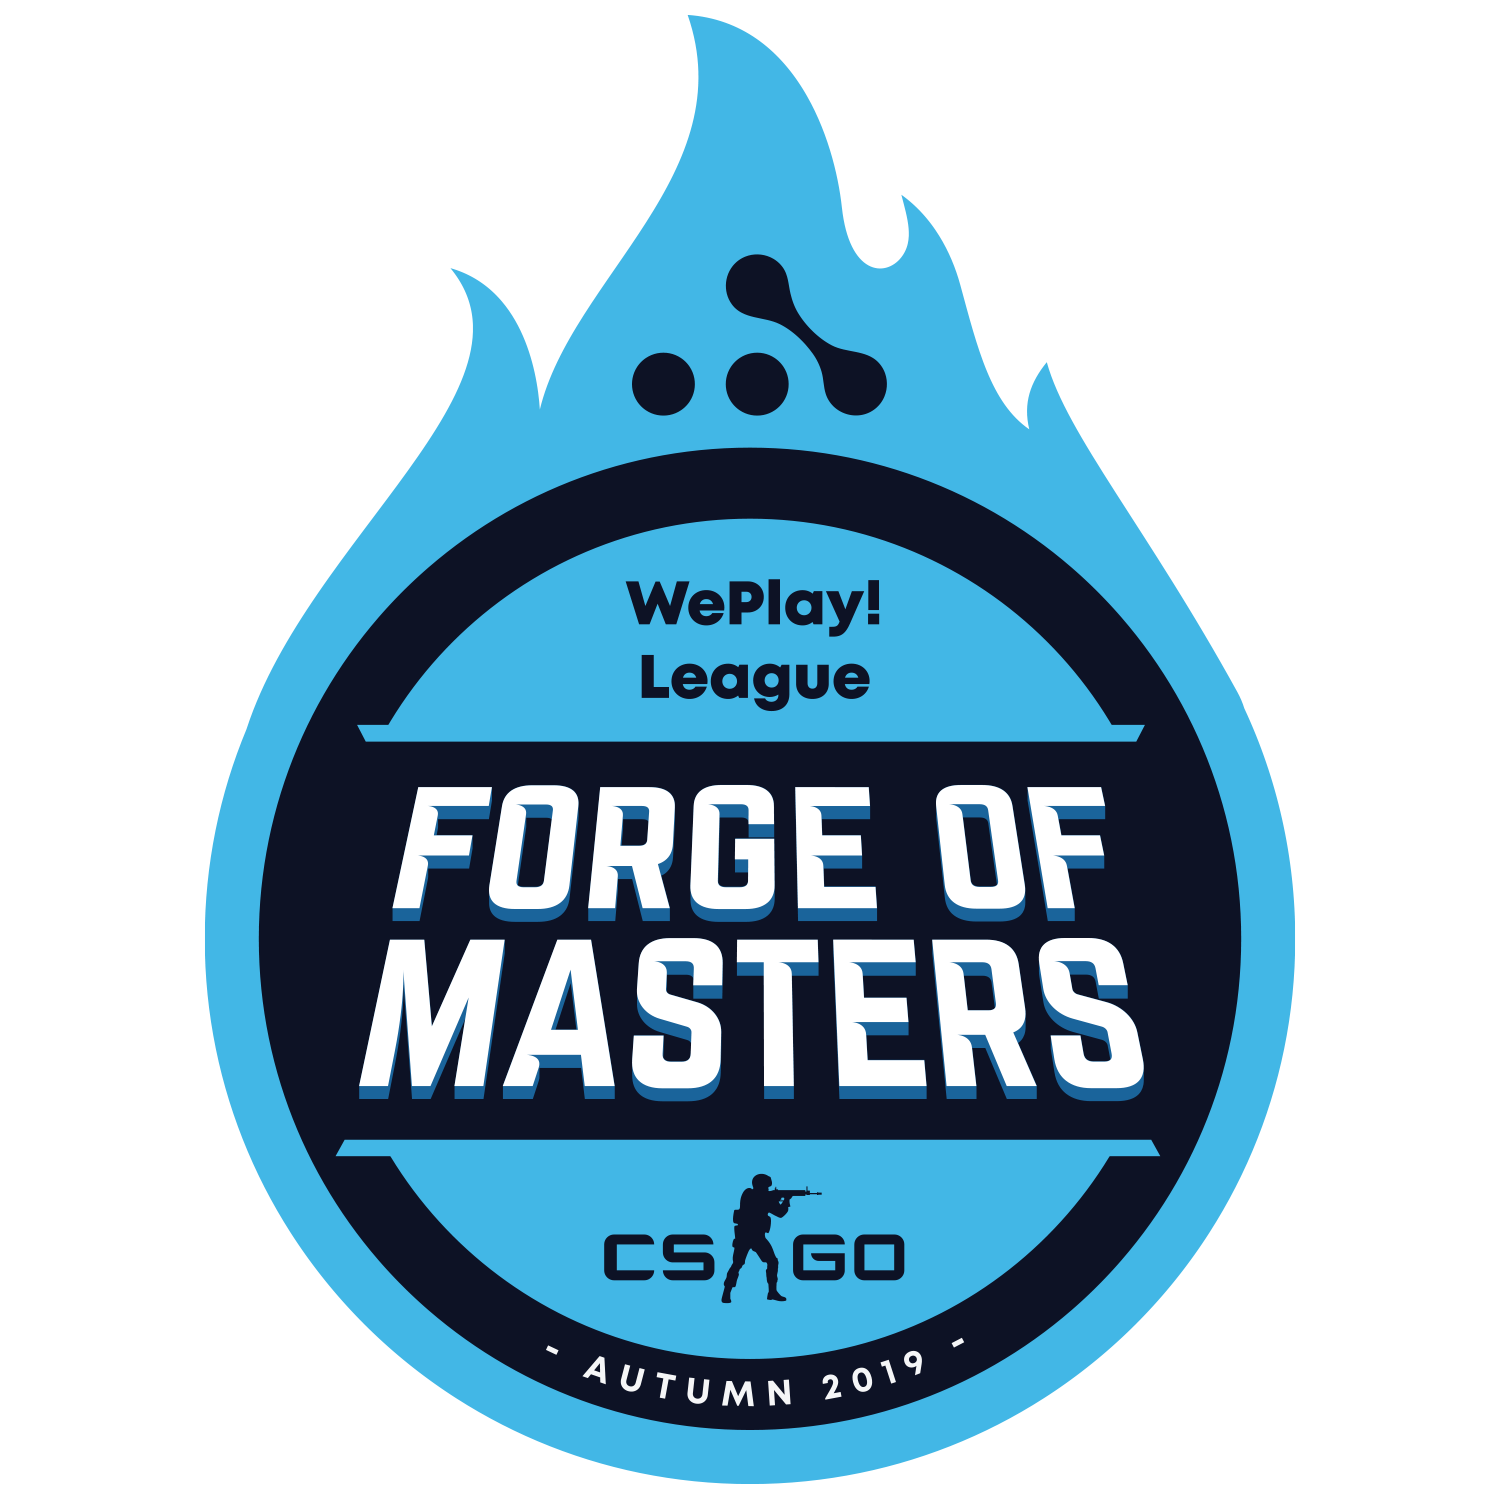 forge of masters